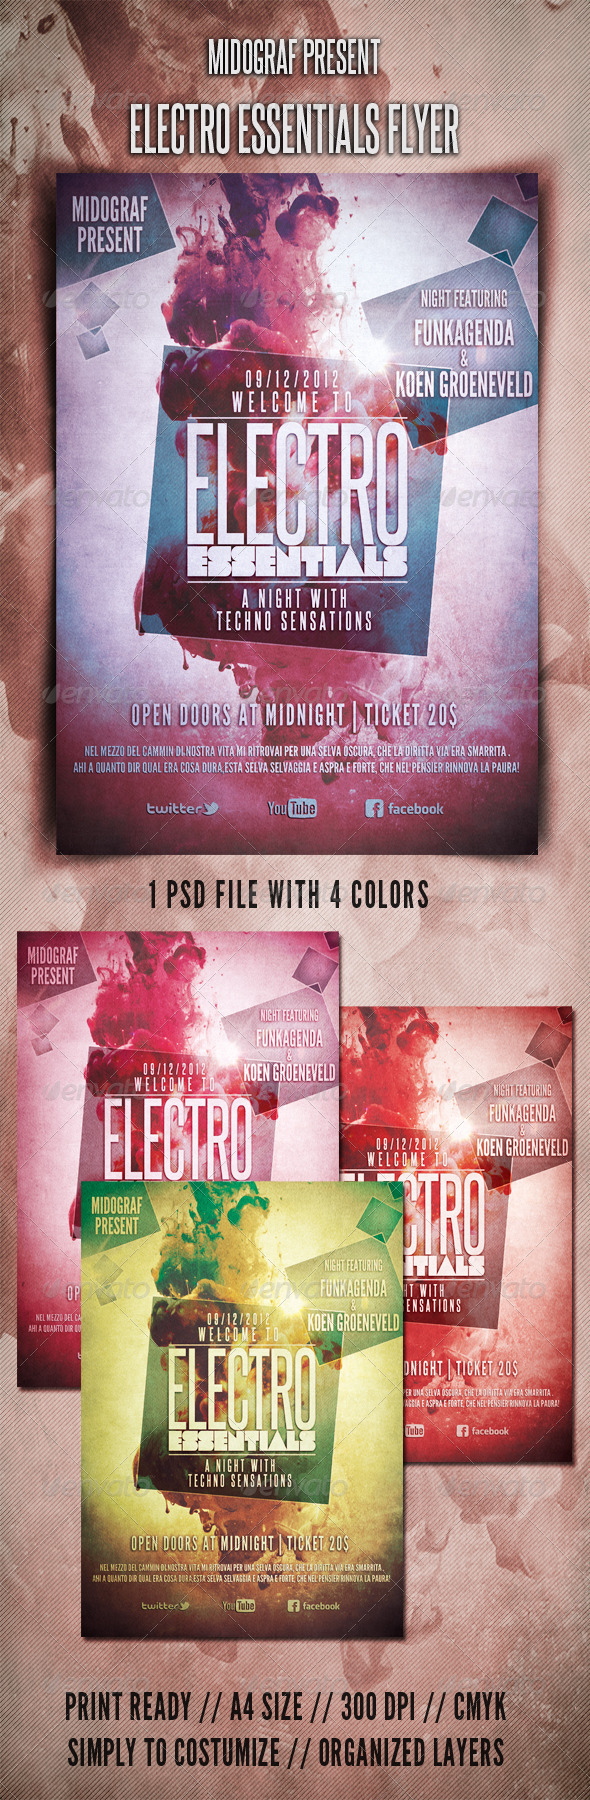 GraphicRiver Electro Essentials Flyer 3522763